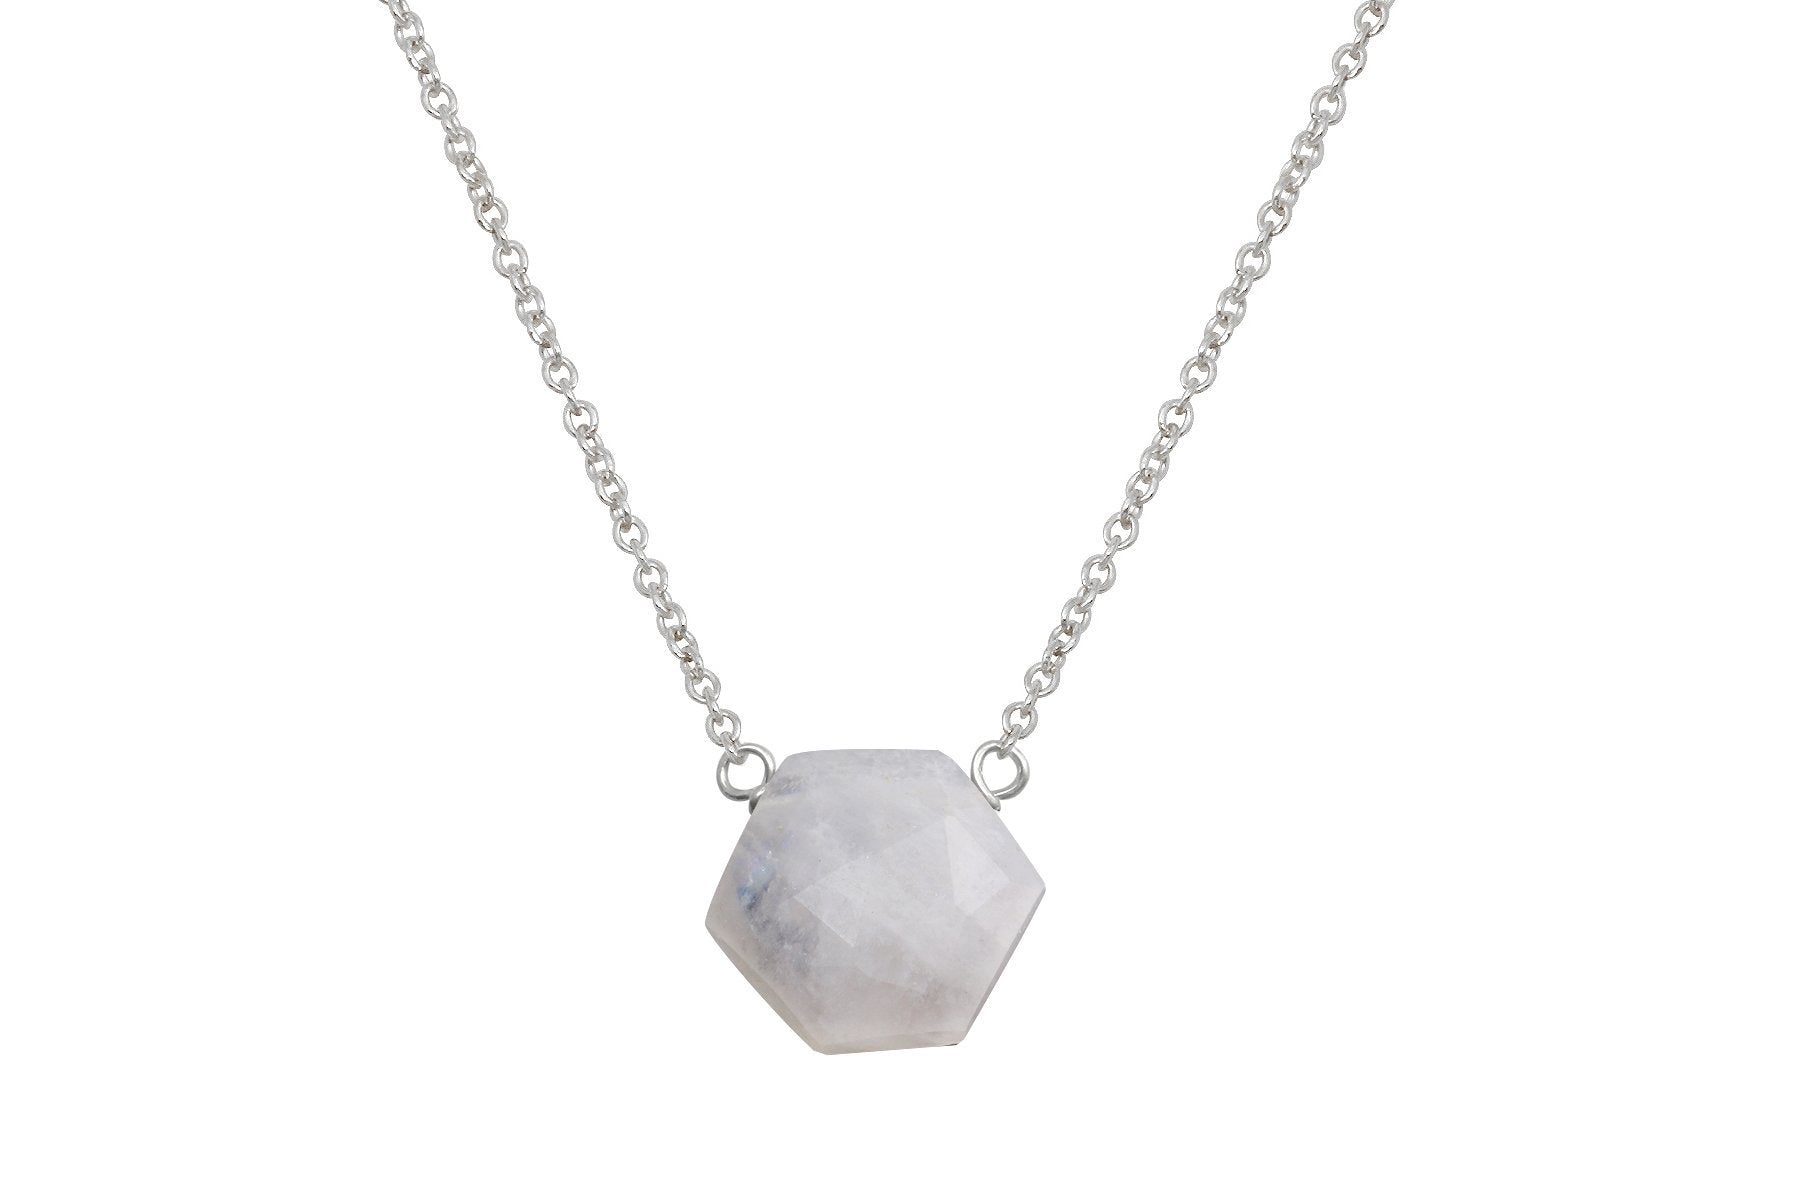 Rainbow moonstone hexagon sterling silver necklace - Amanda K Lockrow